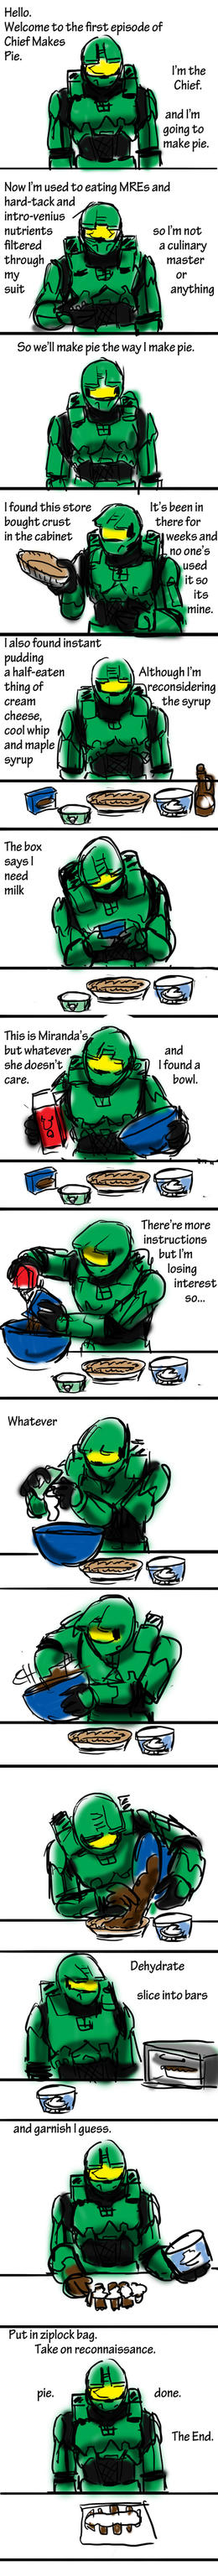 chief_makes_pie_by_jameson9101322-d3iv4q